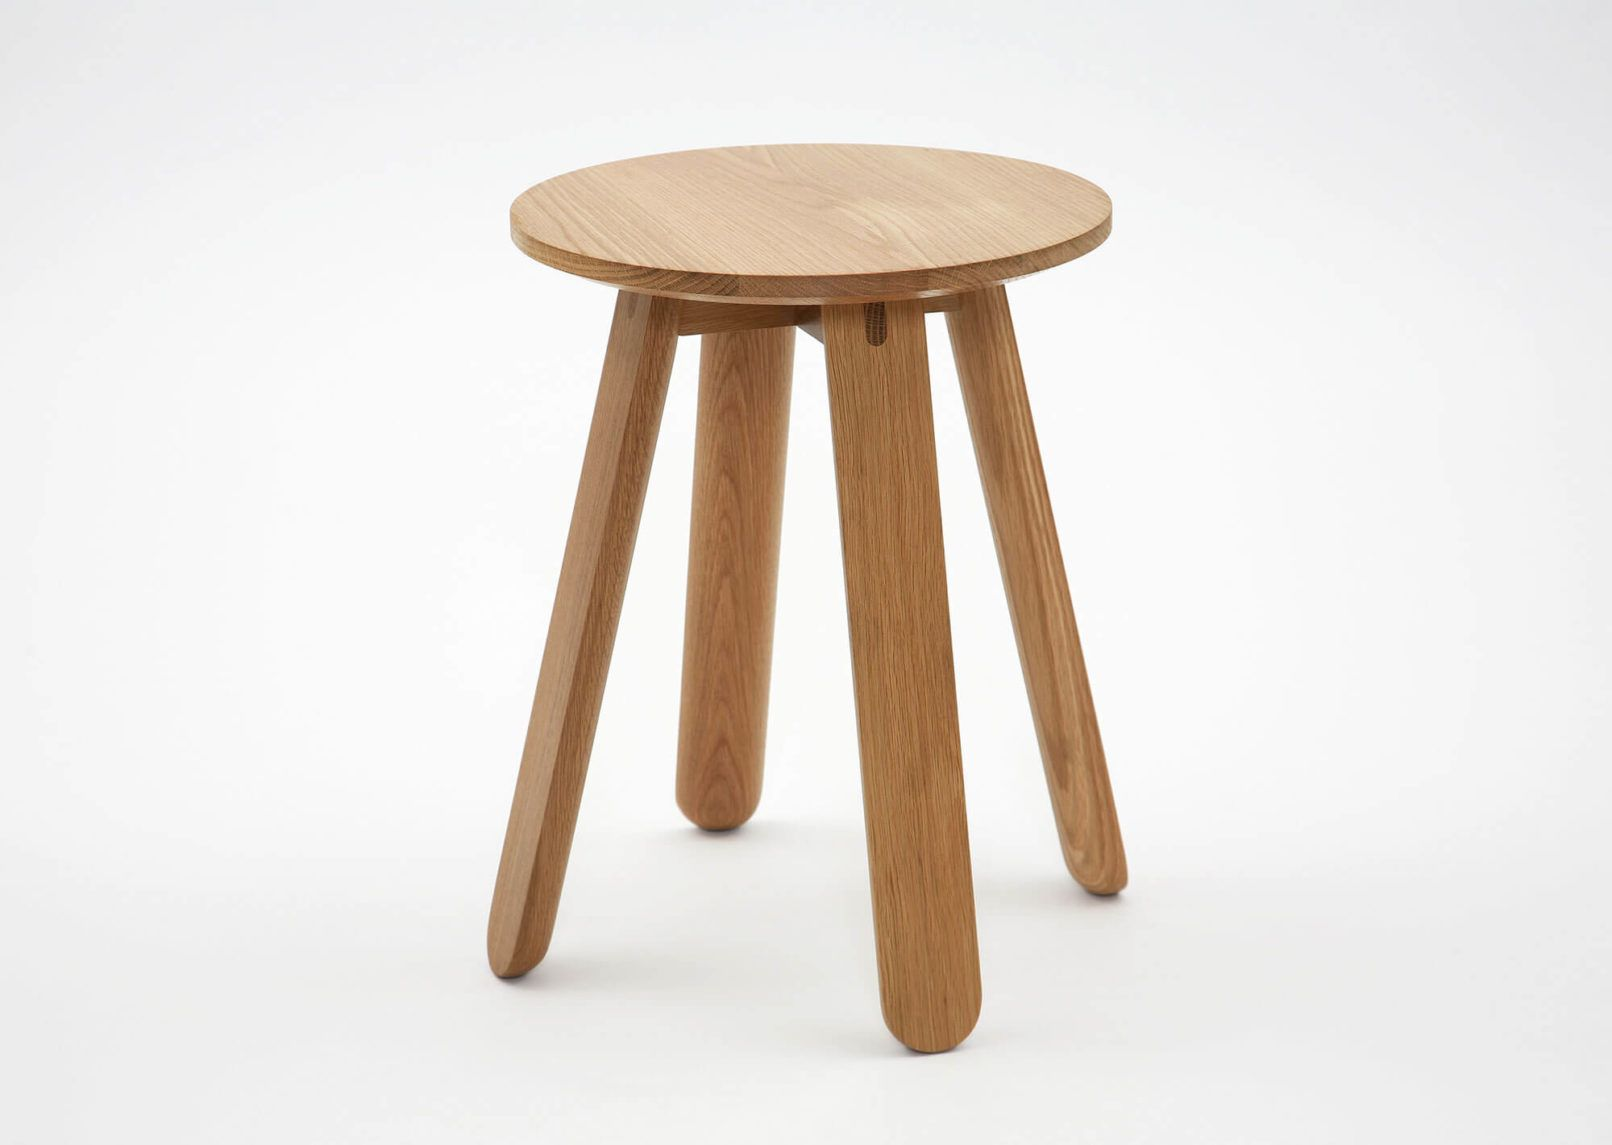 Pleasant Half Full Stool In 2019 Products Stool Furniture Pabps2019 Chair Design Images Pabps2019Com